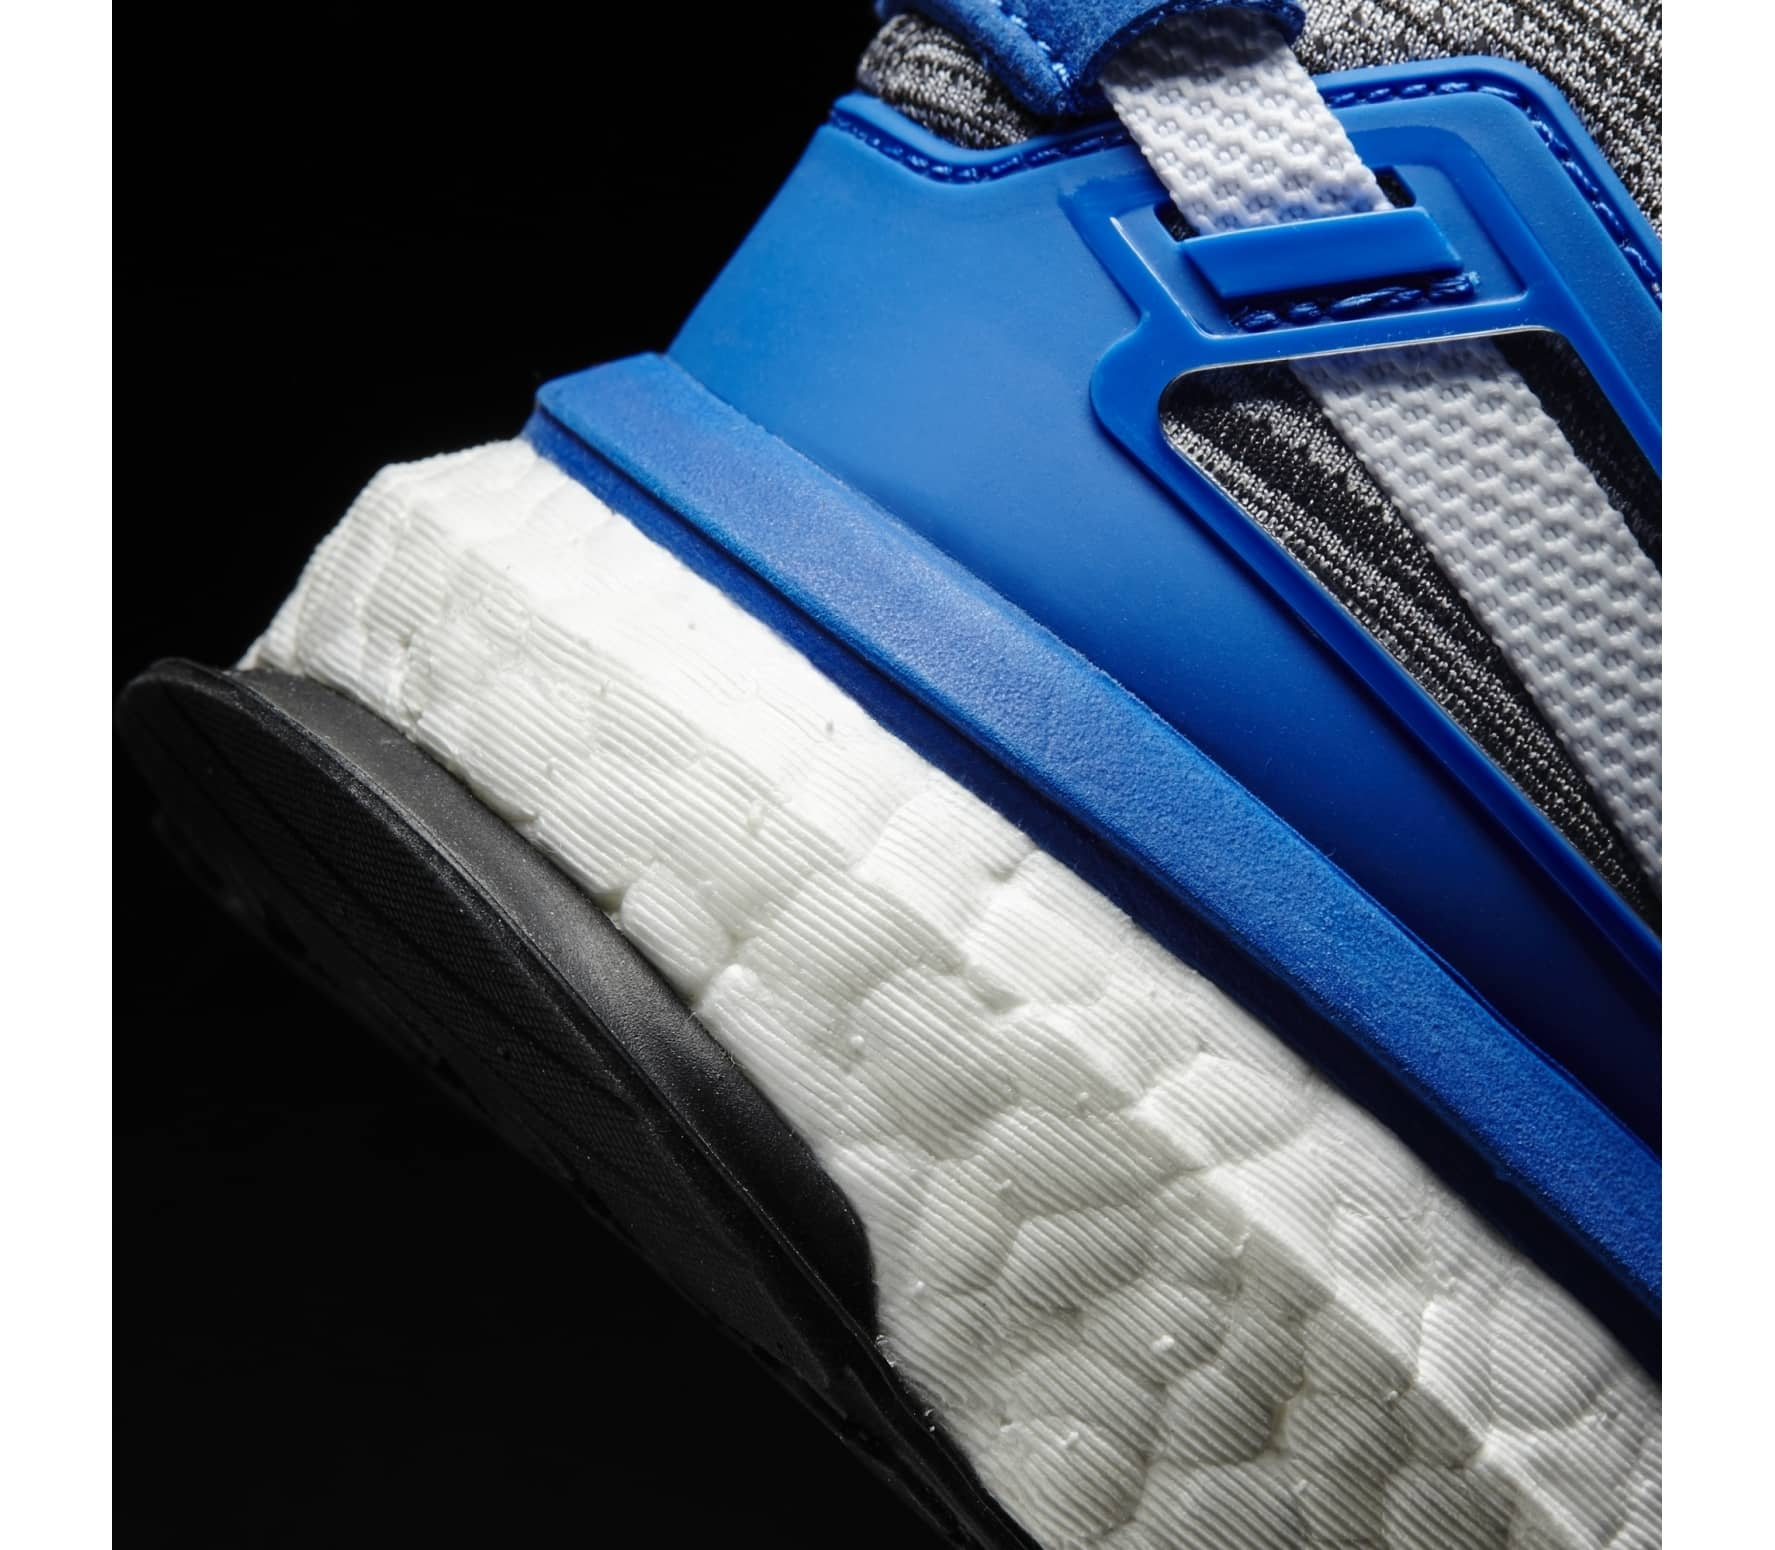 new arrival 98160 ceec8 Adidas - Energy Boost 3 mens running shoes (bluegrey)